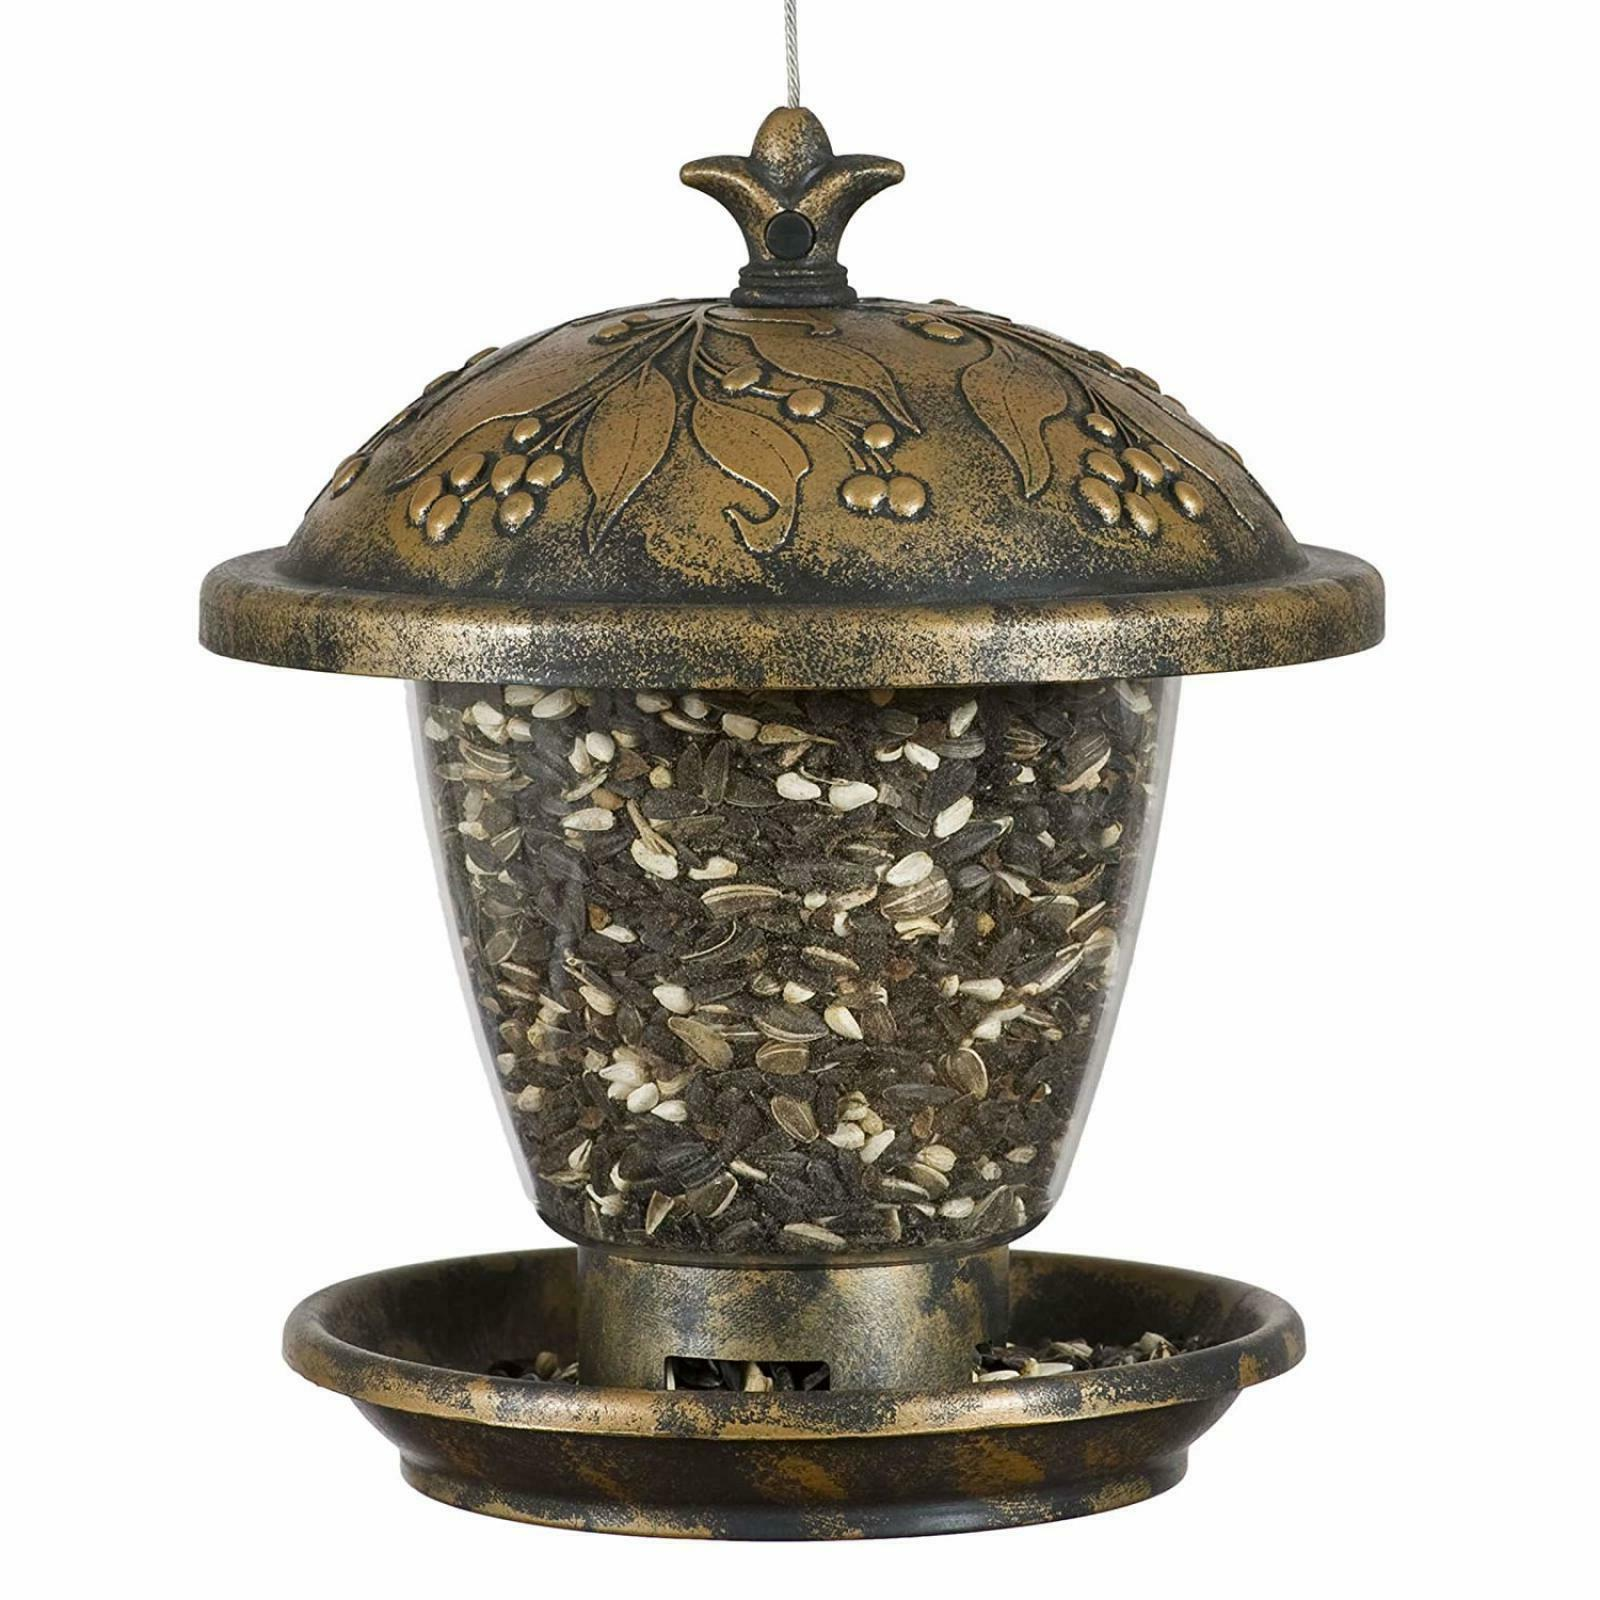 Perky-Pet 305 Holly Berry Gilded Chalet Wild Bird Feeder 2 L